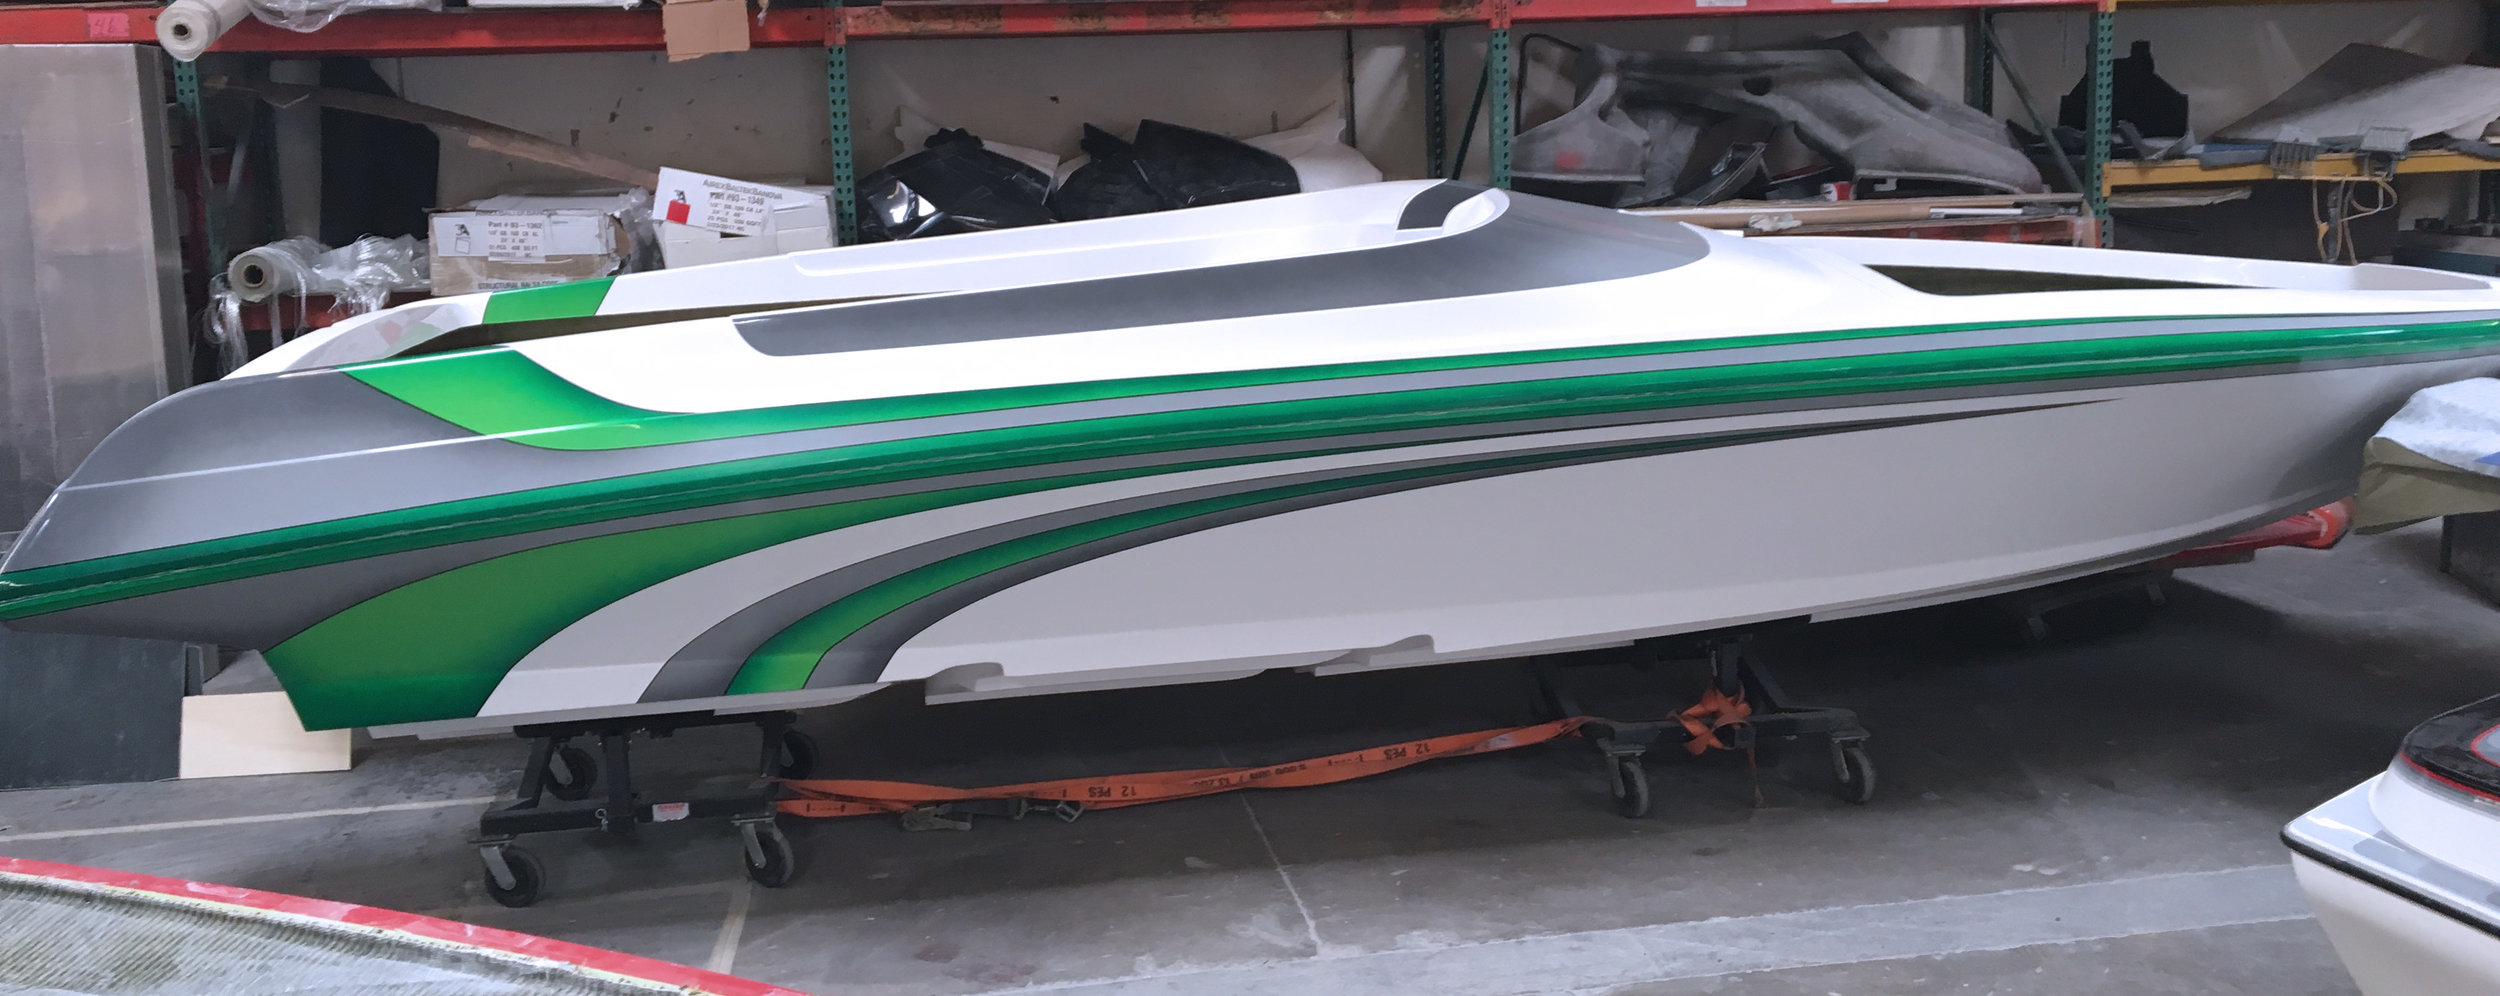 24 hull for sale pic 1.jpg